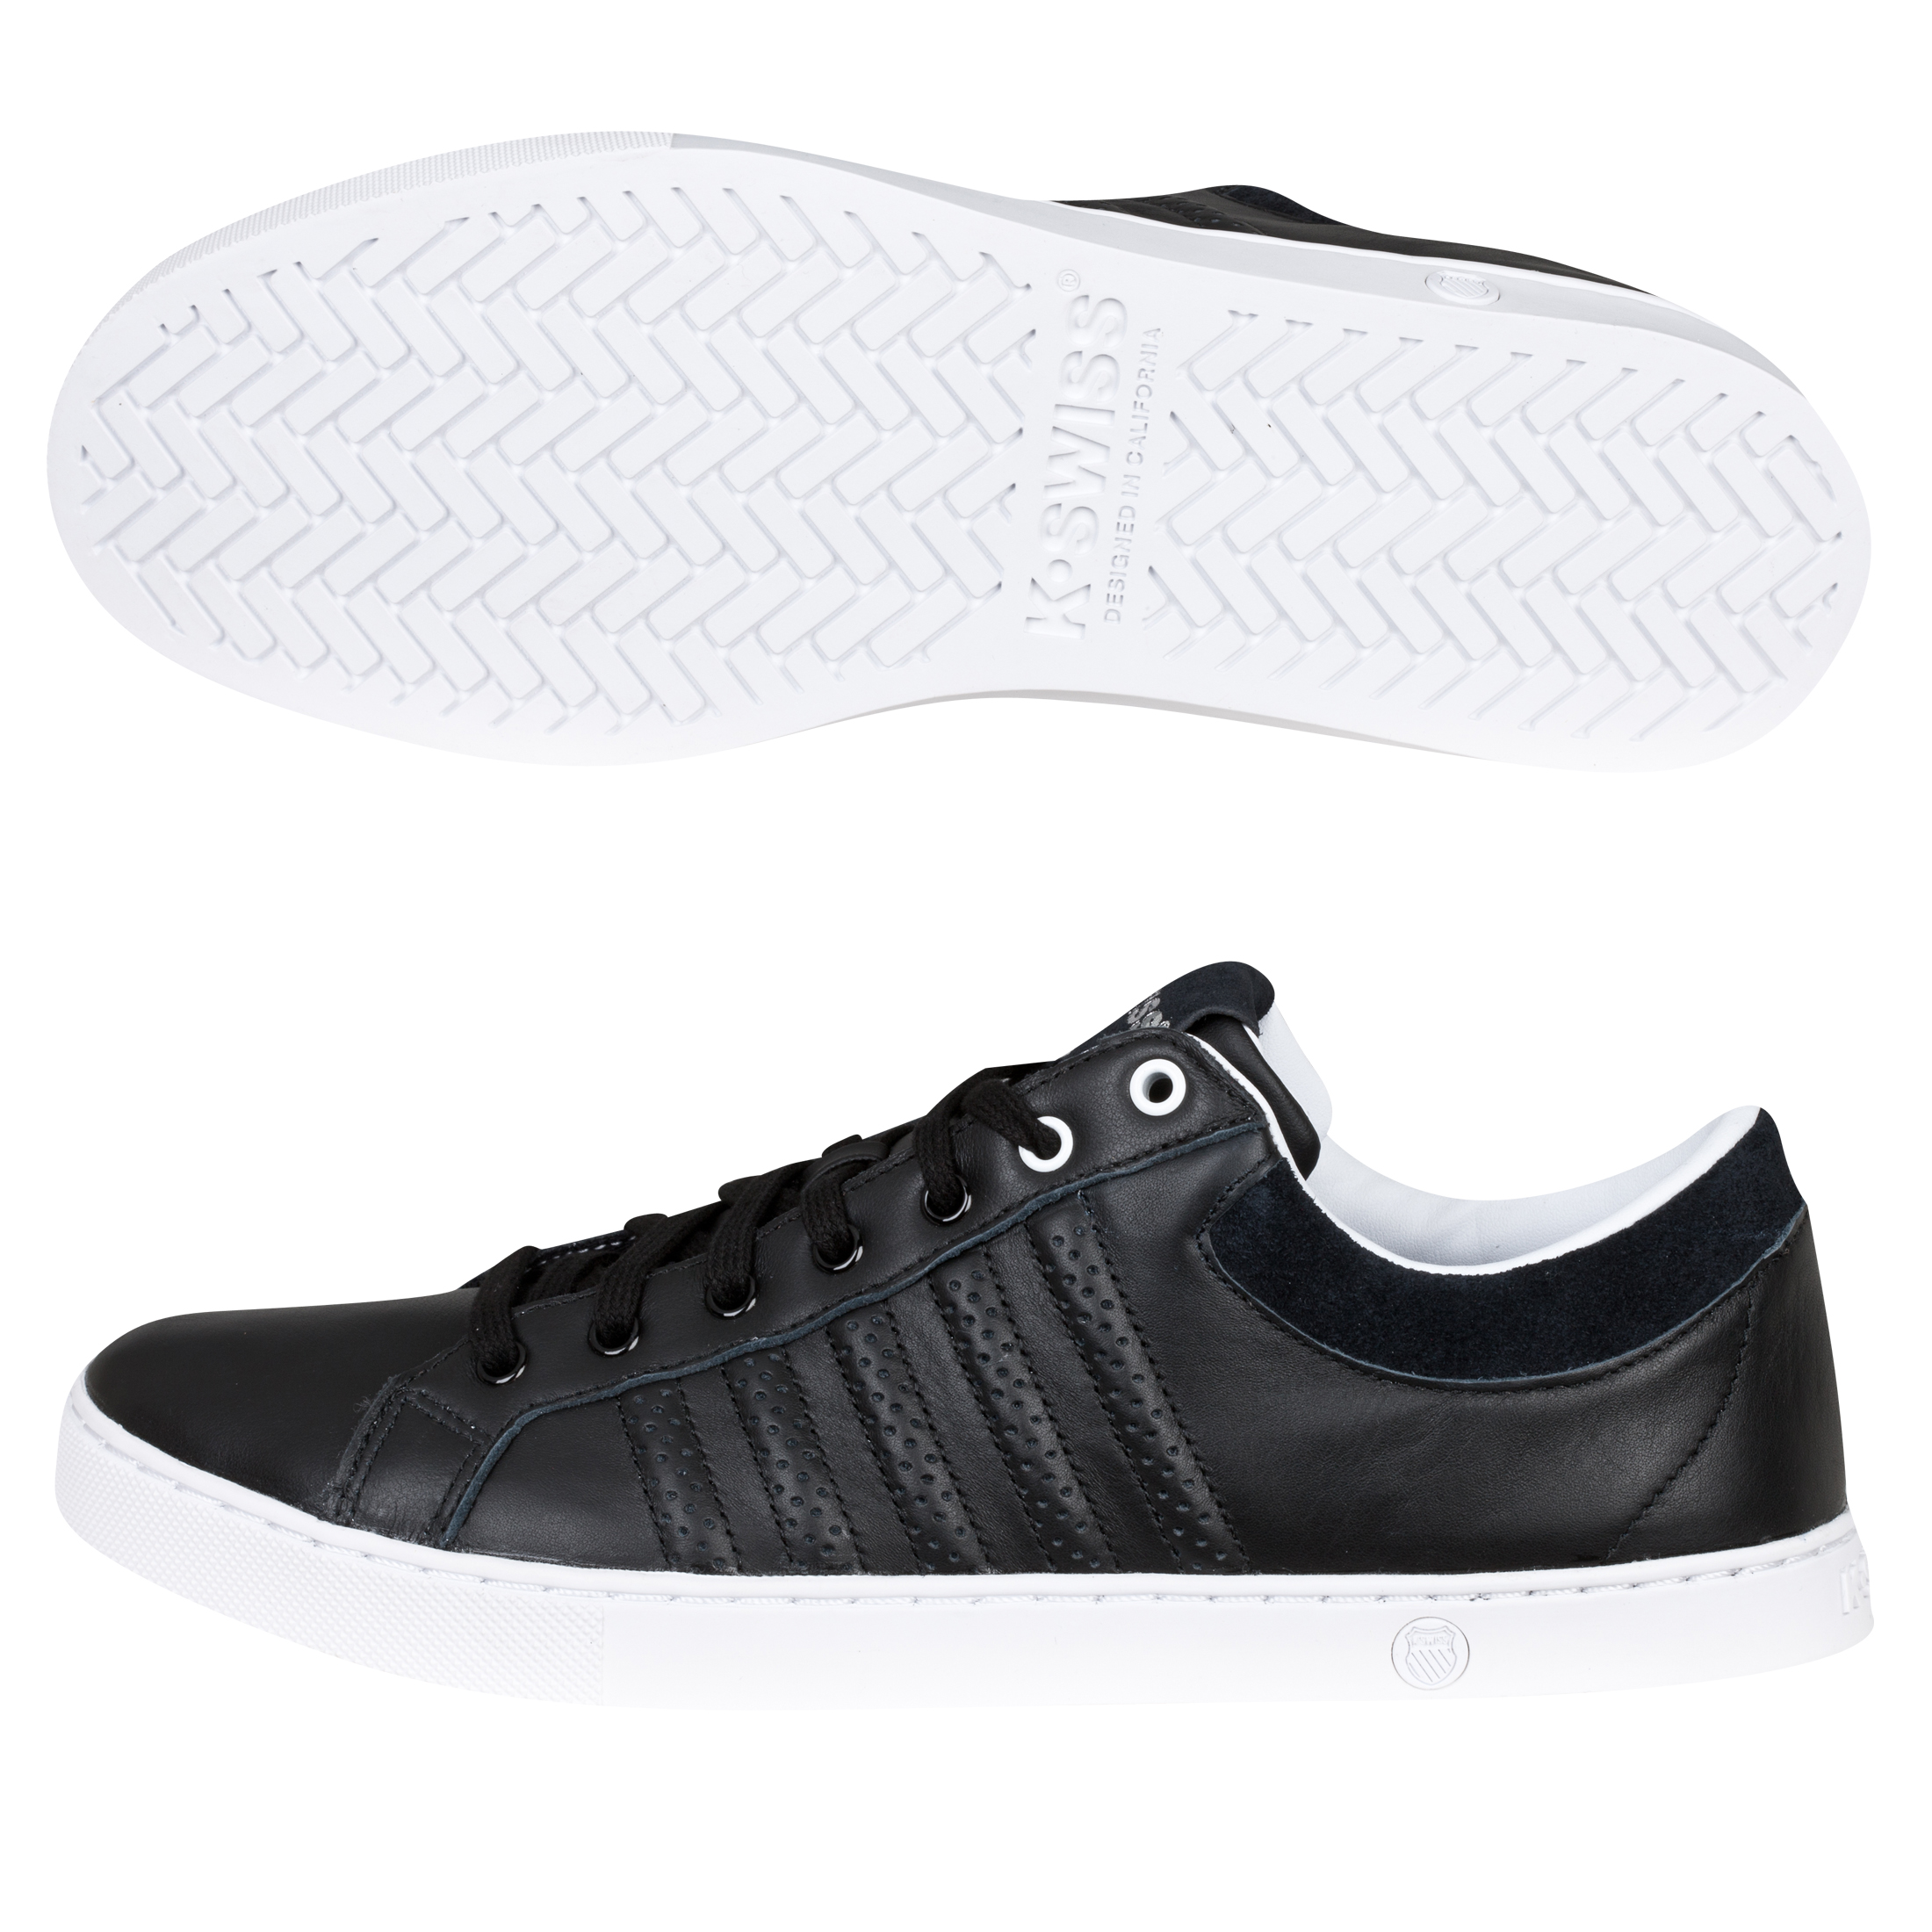 K Swiss K-Swiss Adcourt 72 Trainers - Black/White